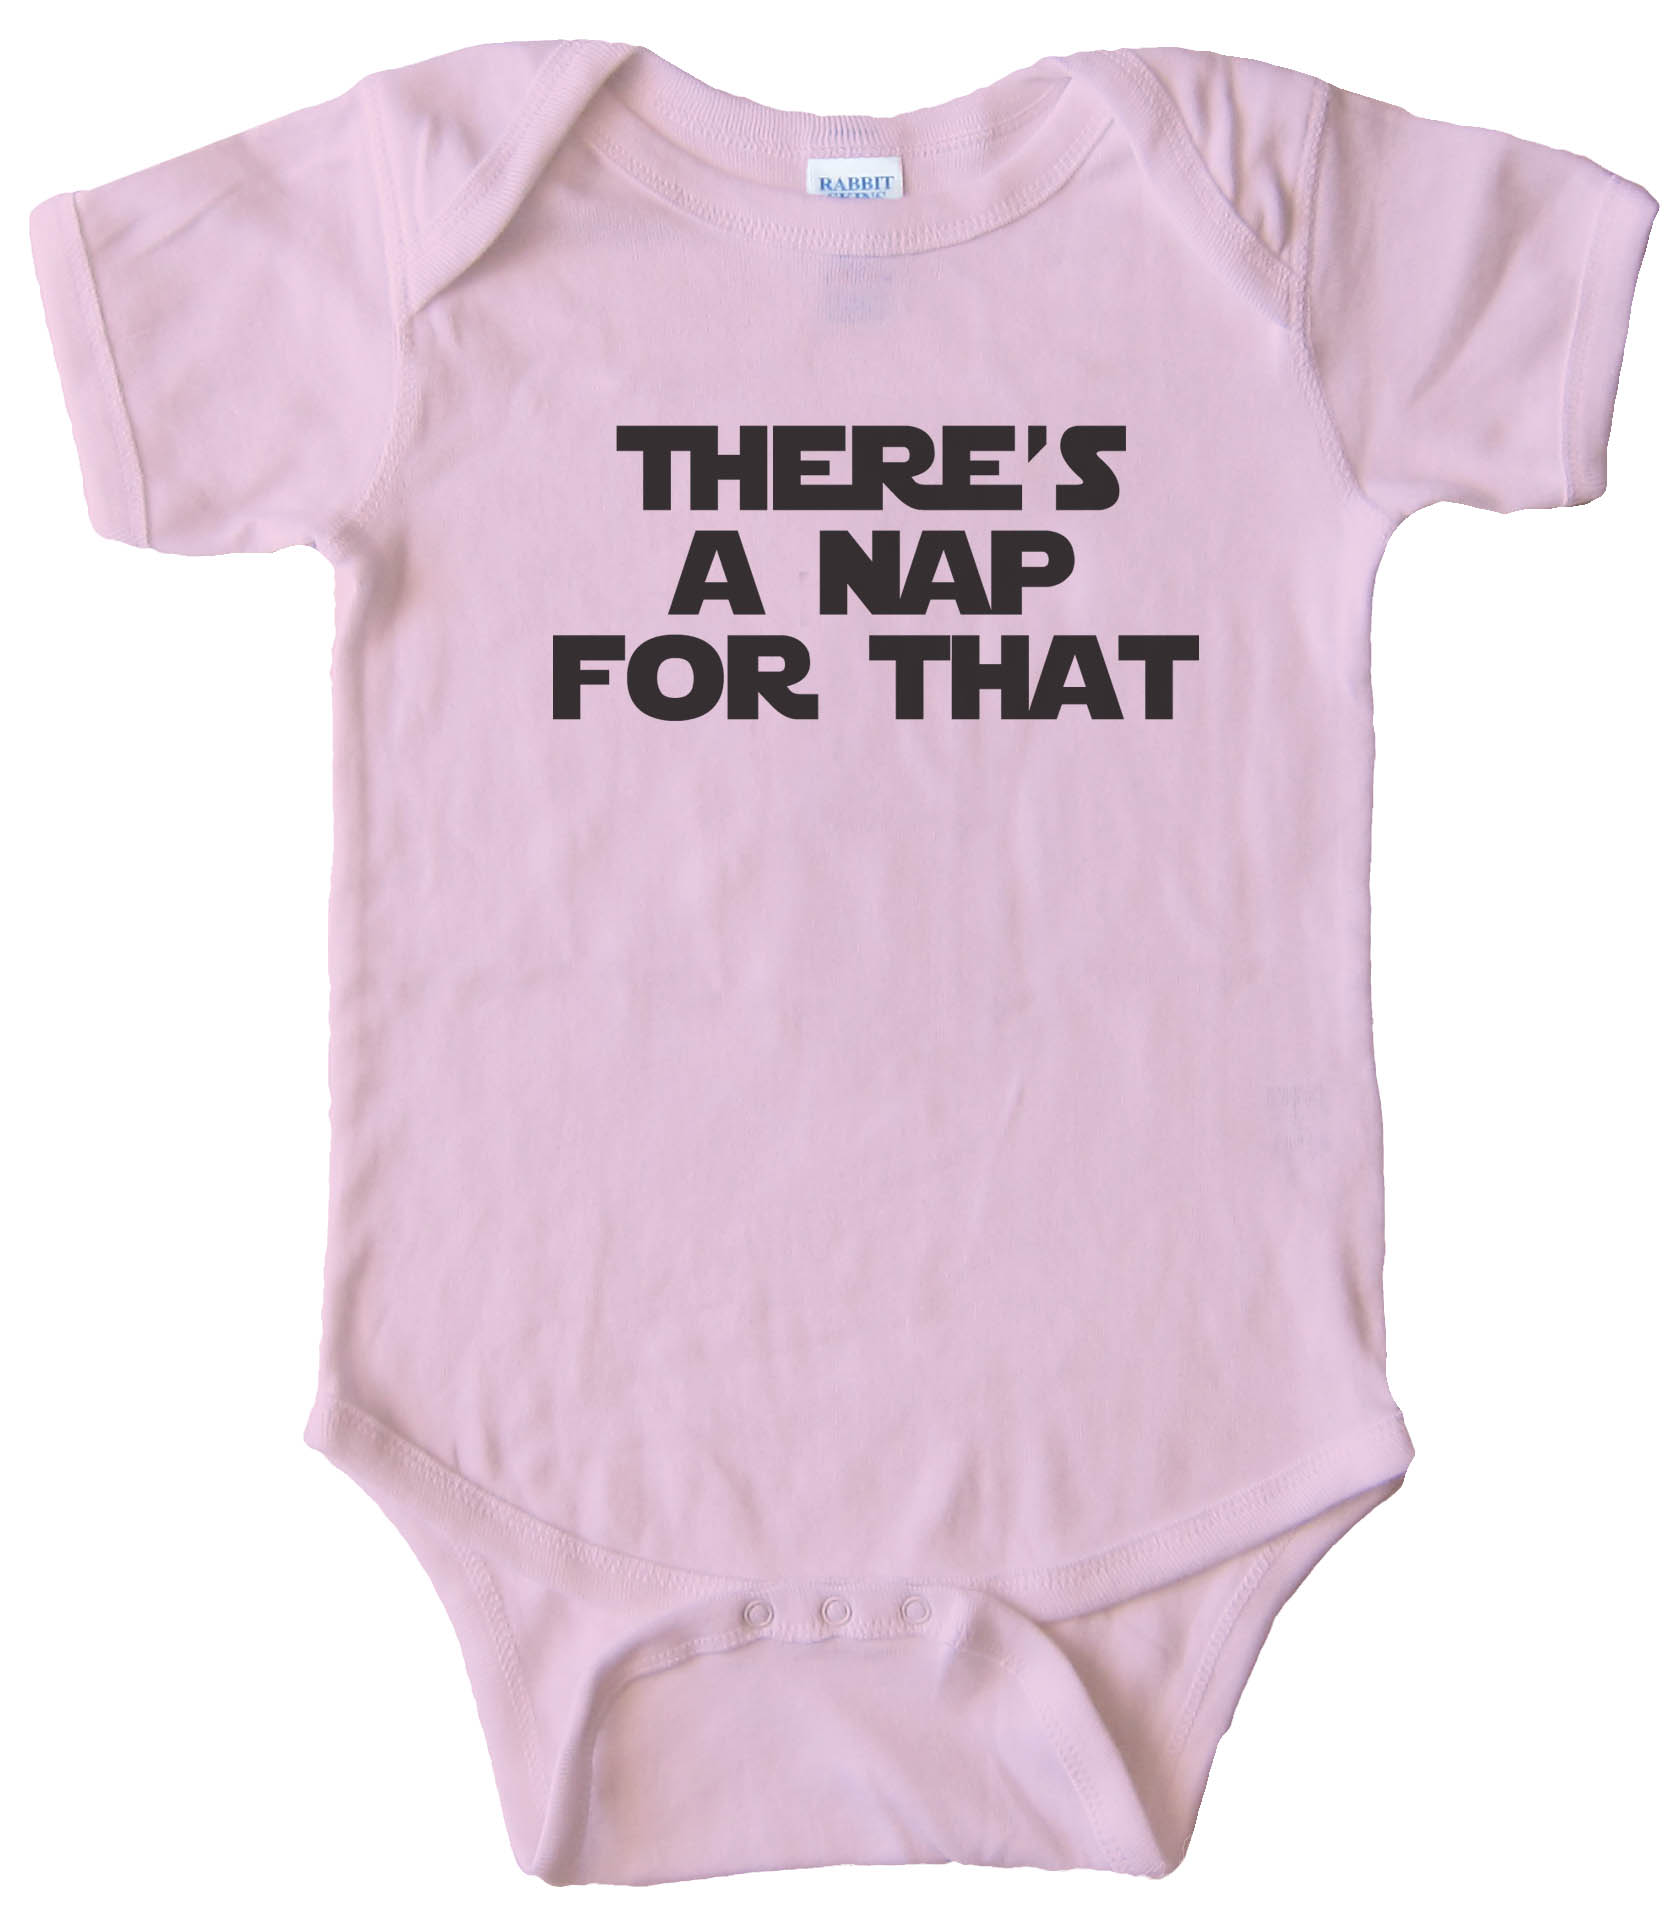 Theres A Nap For That  - Baby Bodysuit